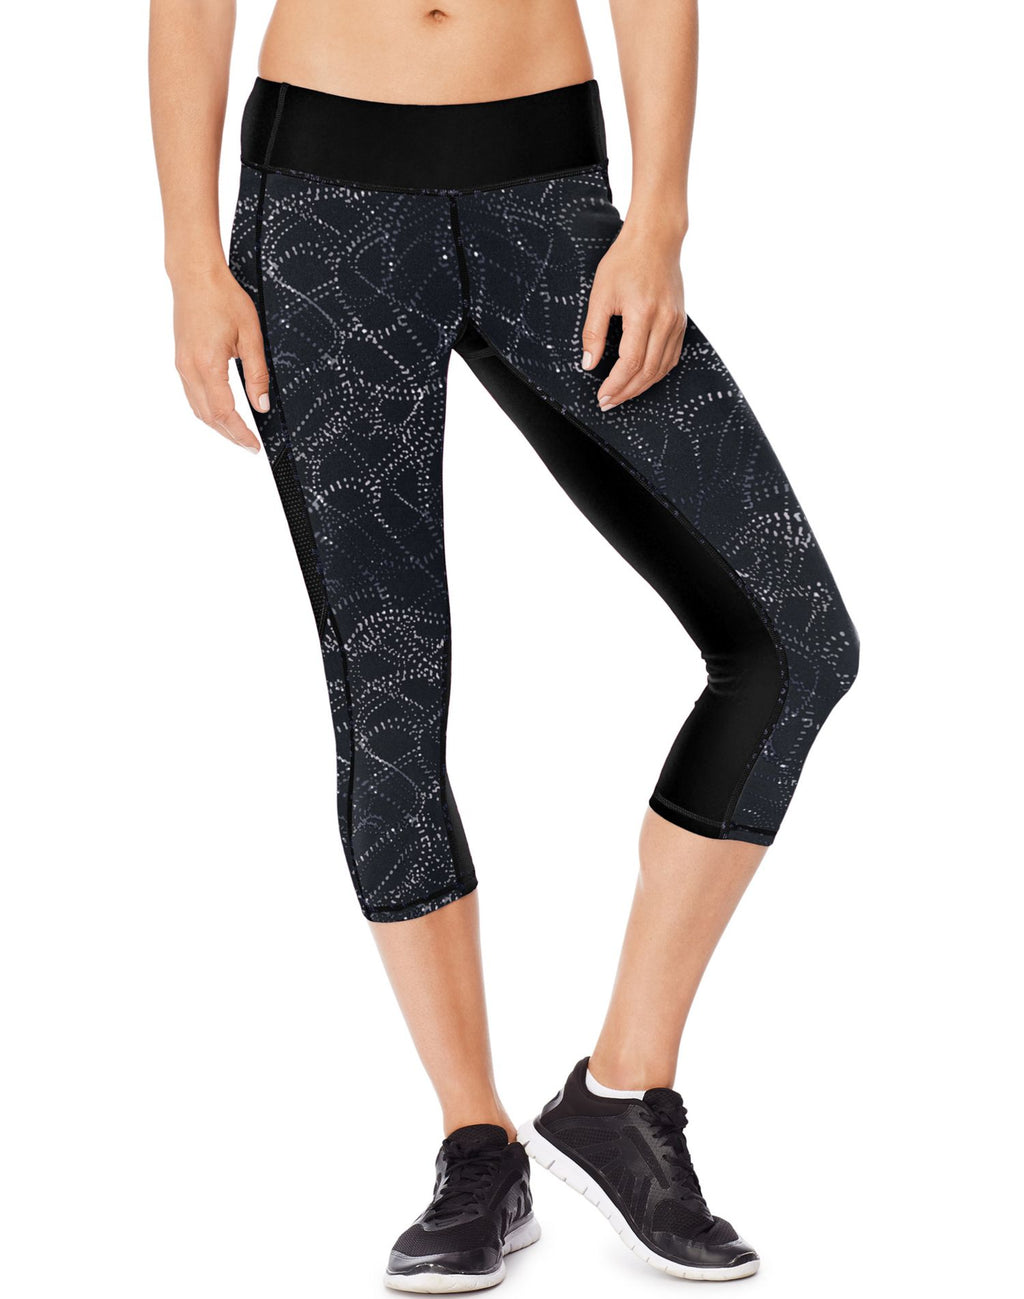 Hanes Womens Sport Performance Blocked Capri Leggings